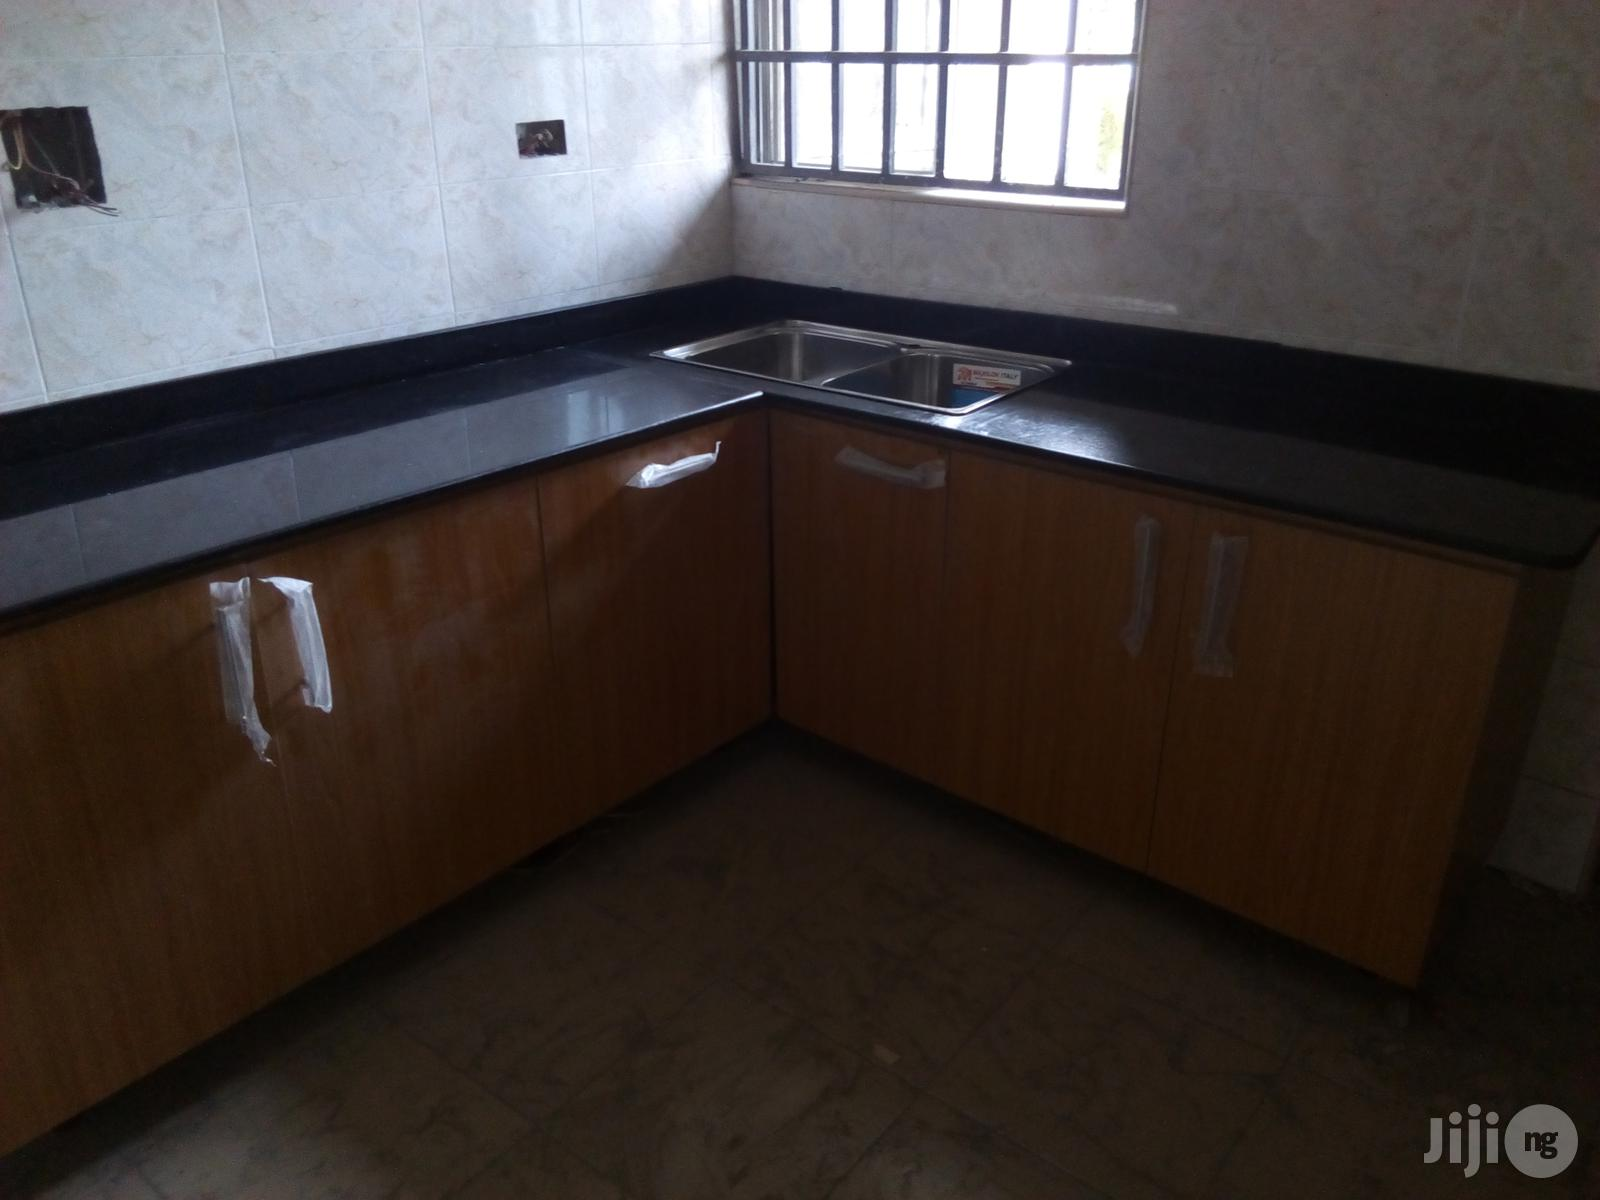 Granite Top And Cabinet For Homes And Offices